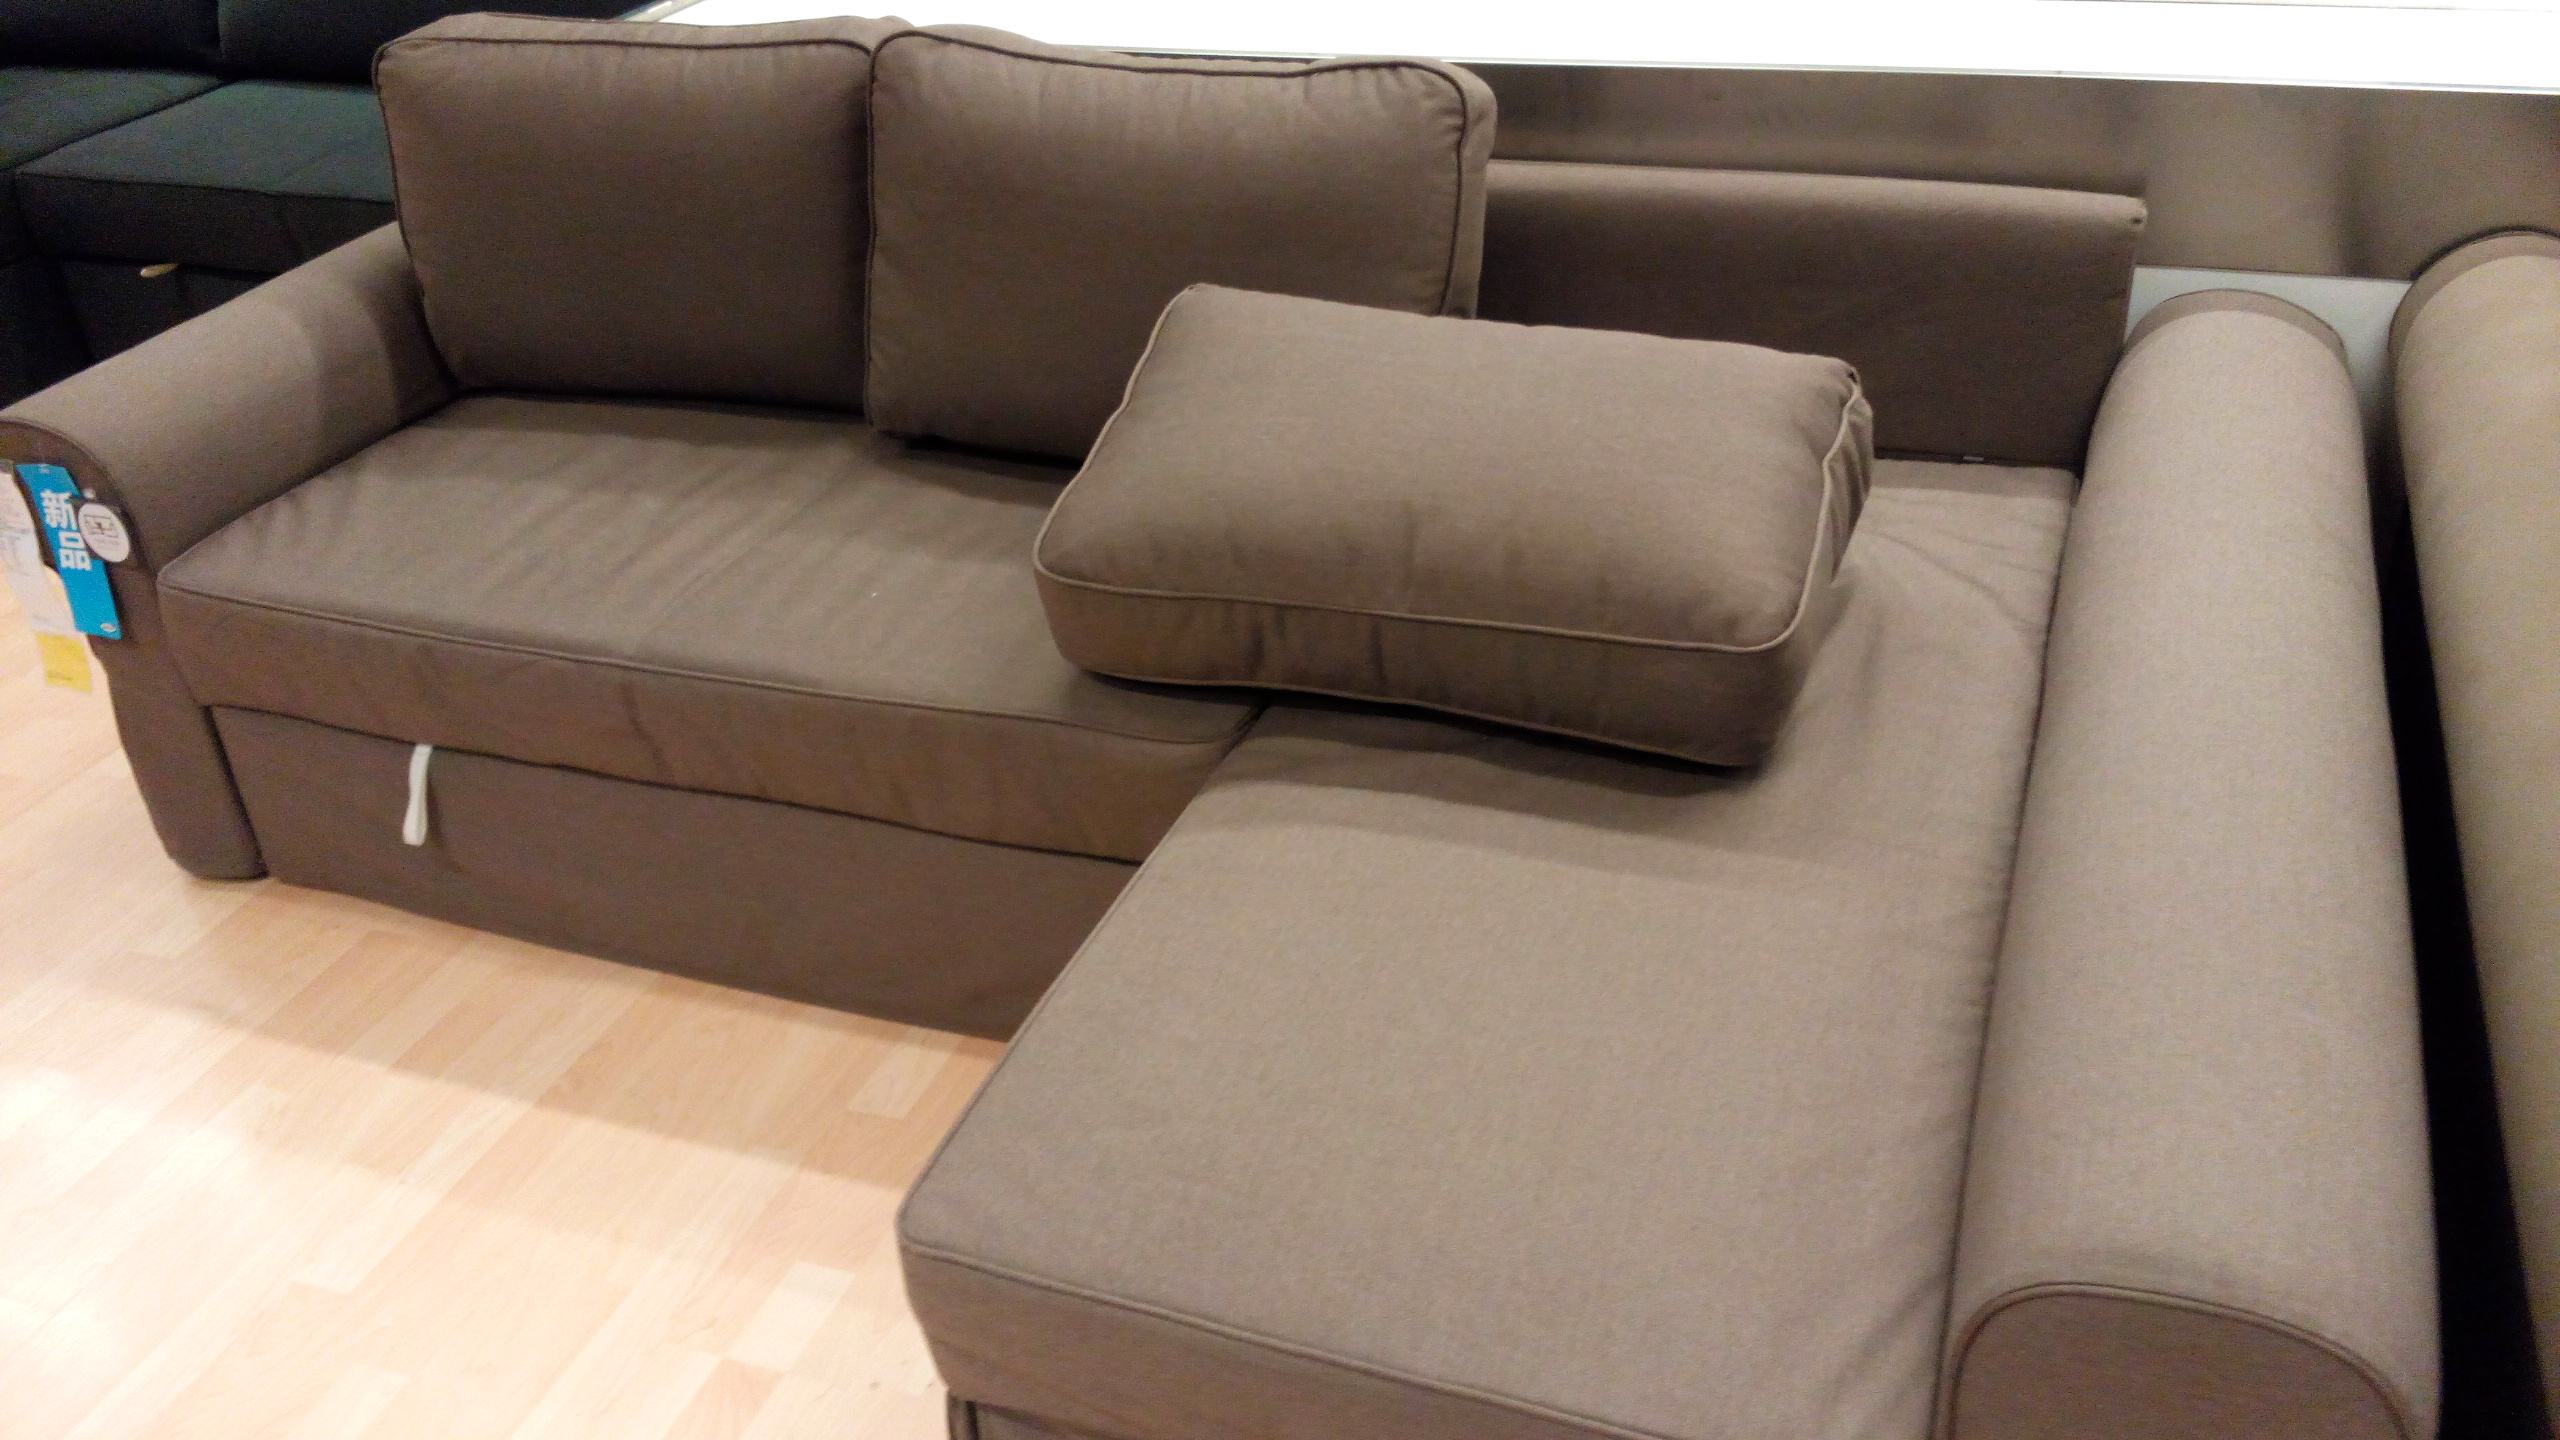 Sofa Sleepers Ikea With Brown Color And Pillows